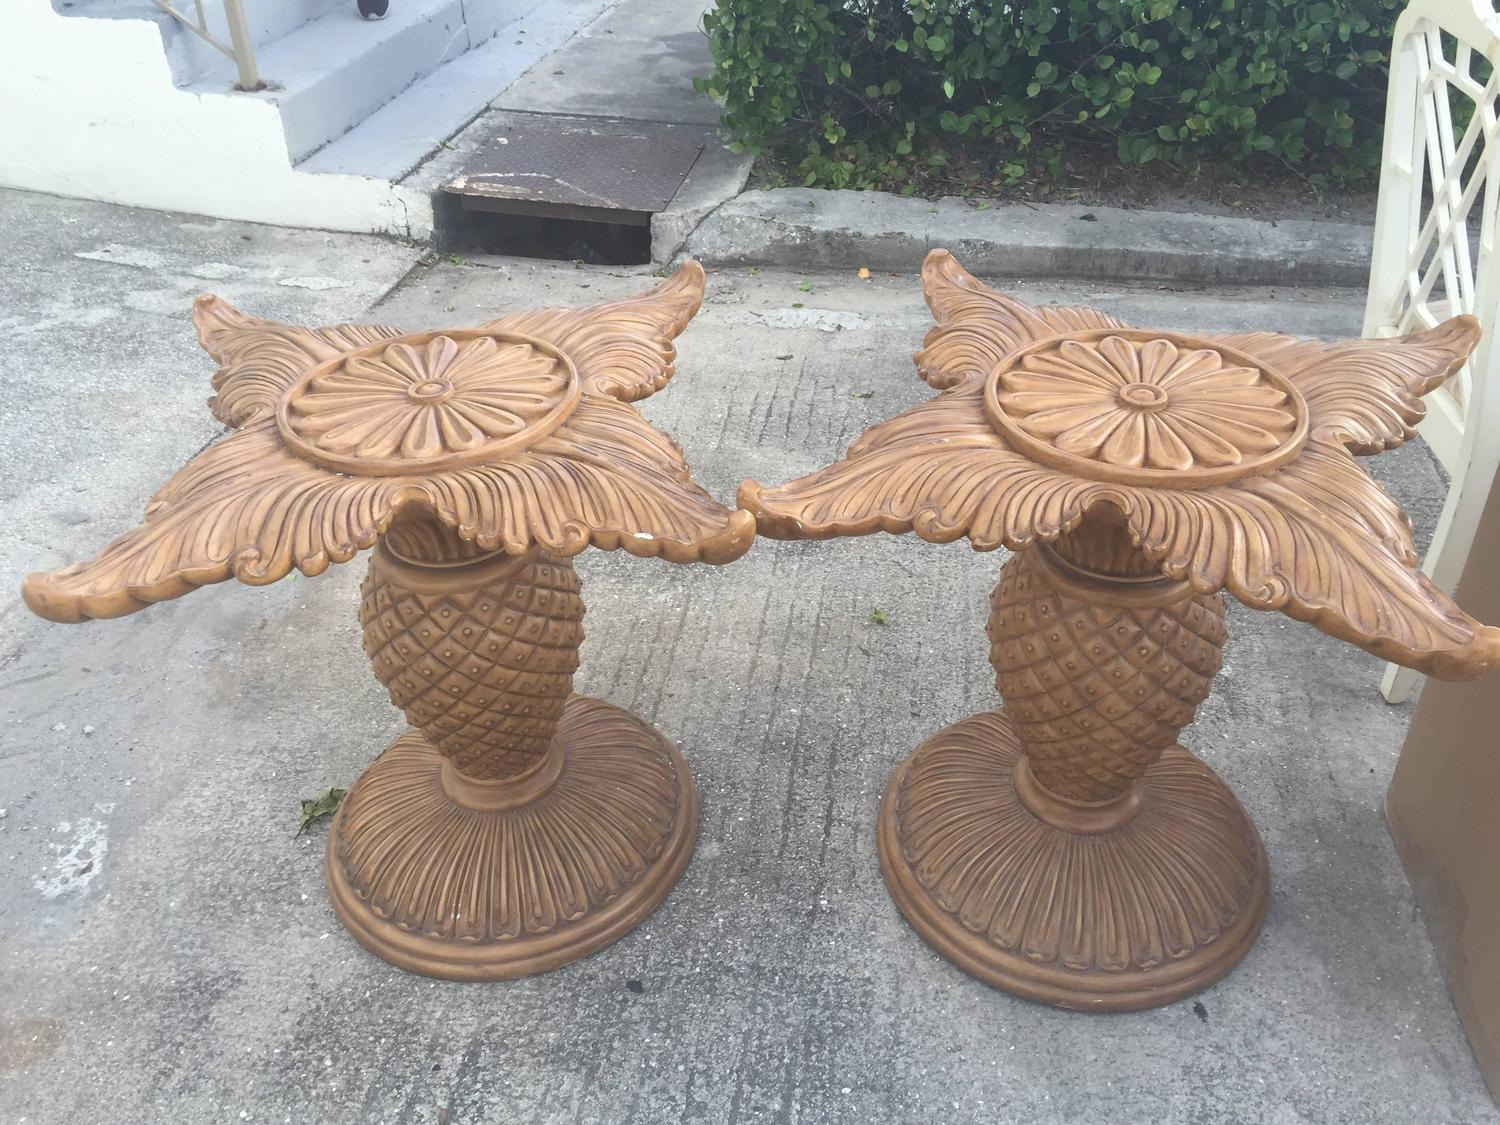 Pair of Wood Carved Pineapple Dining Table or Desk Bases  : imagez from www.1stdibs.com size 1500 x 1125 jpeg 280kB